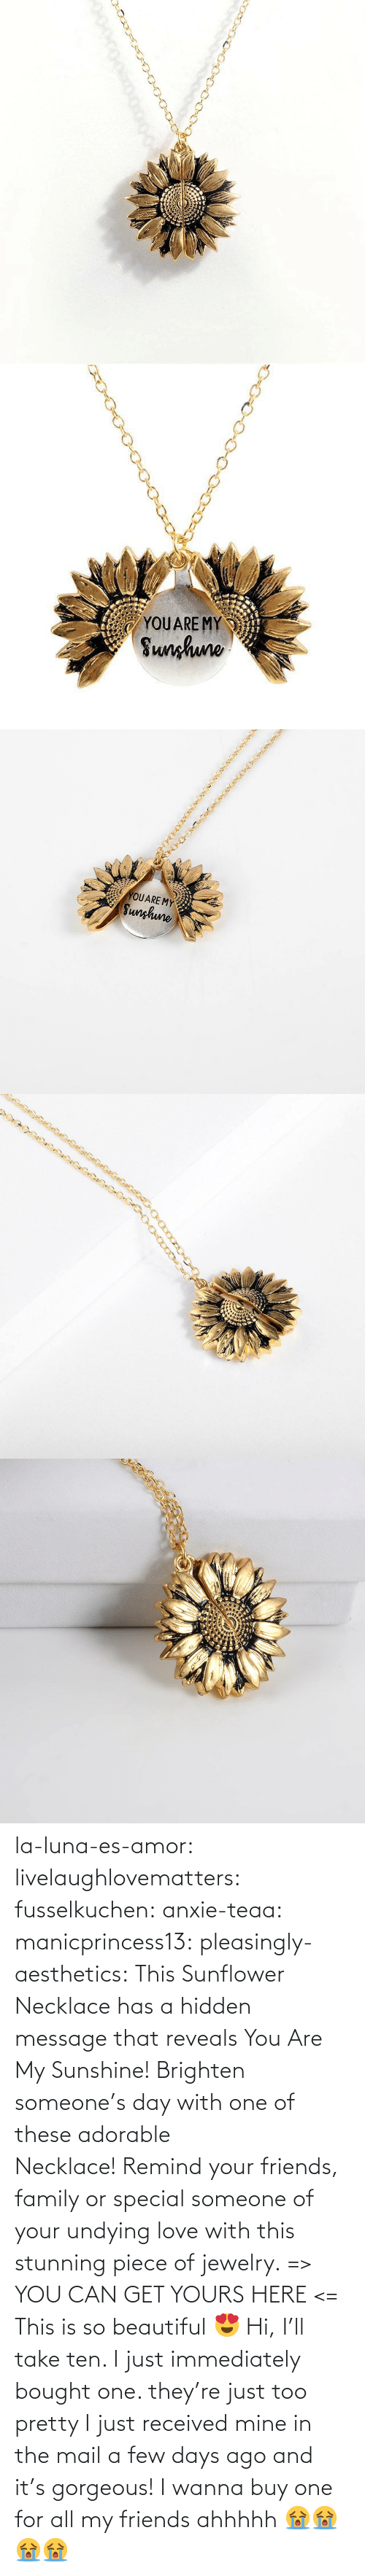 a-few-days: YOUARE MY  Sunhuno   YOUARE MY  Sunghune la-luna-es-amor:  livelaughlovematters: fusselkuchen:  anxie-teaa:   manicprincess13:   pleasingly-aesthetics:  This Sunflower Necklace has a hidden message that reveals You Are My Sunshine! Brighten someone's day with one of these adorable Necklace! Remind your friends, family or special someone of your undying love with this stunning piece of jewelry. => YOU CAN GET YOURS HERE <=   This is so beautiful 😍    Hi, I'll take ten.    I just immediately bought one. they're just too pretty   I just received mine in the mail a few days ago and it's gorgeous!   I wanna buy one for all my friends ahhhhh 😭😭😭😭